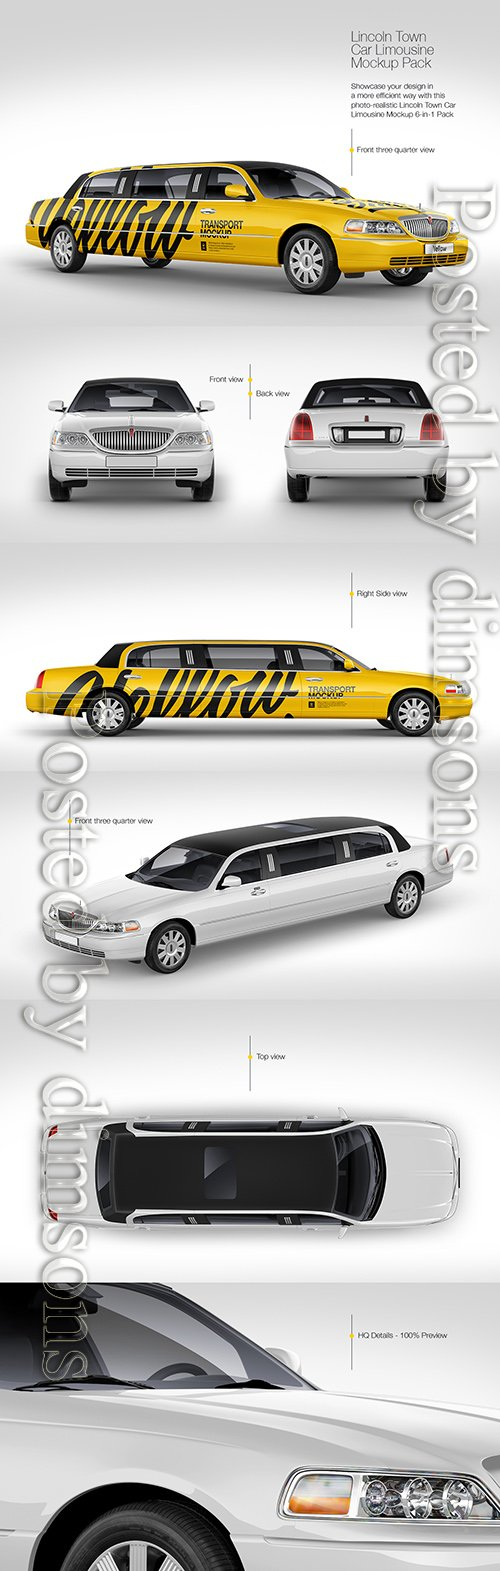 Lincoln Town Car Limousine Mockup Pack TIF